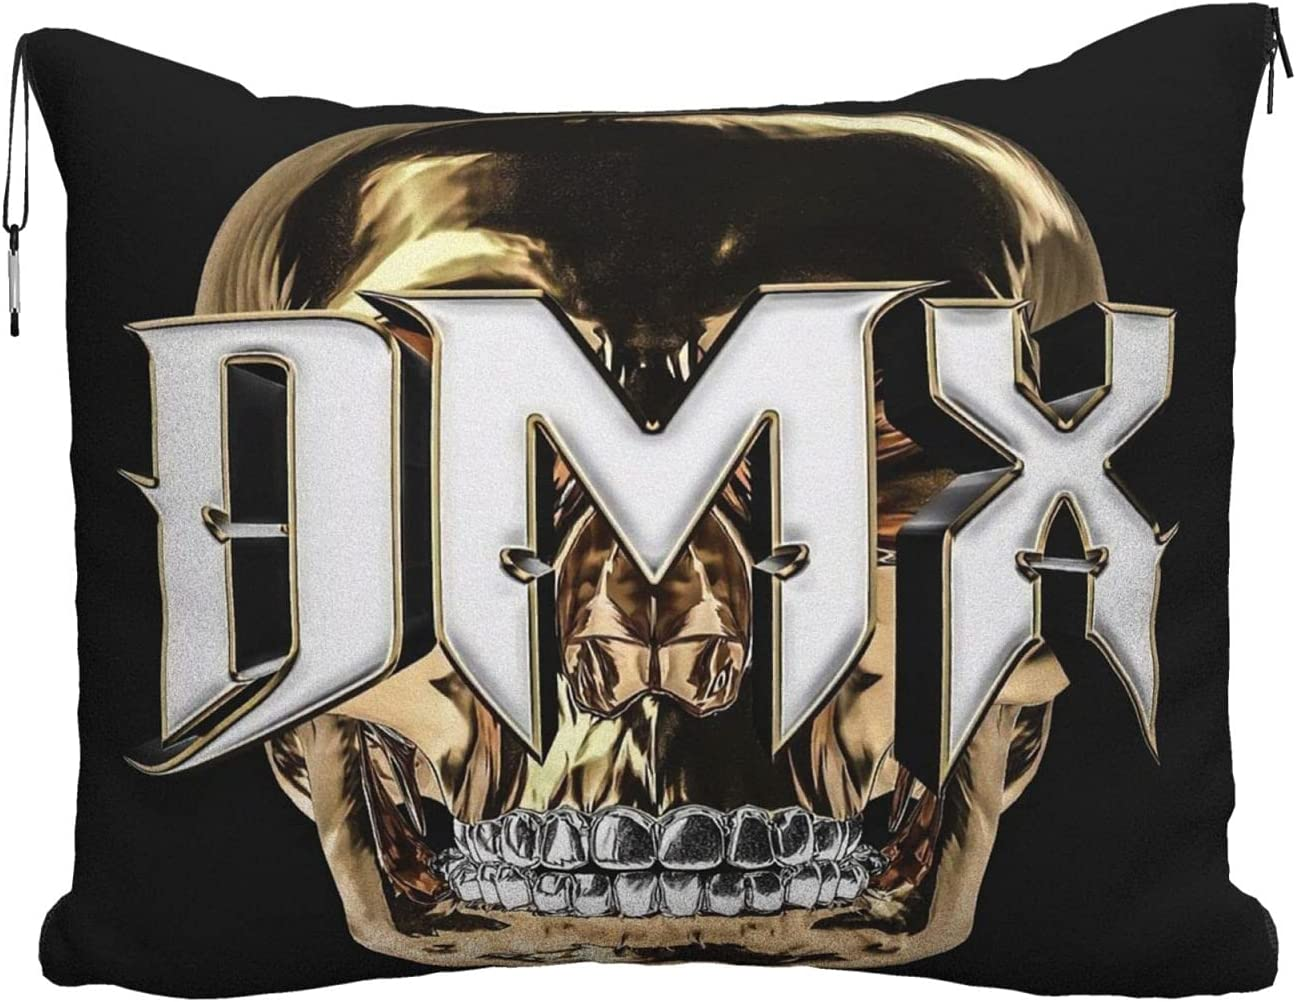 D_M_Xtravel Pillow Blanket Warm and Velvet Soft Max 55% OFF Blanke Flannel Quality inspection